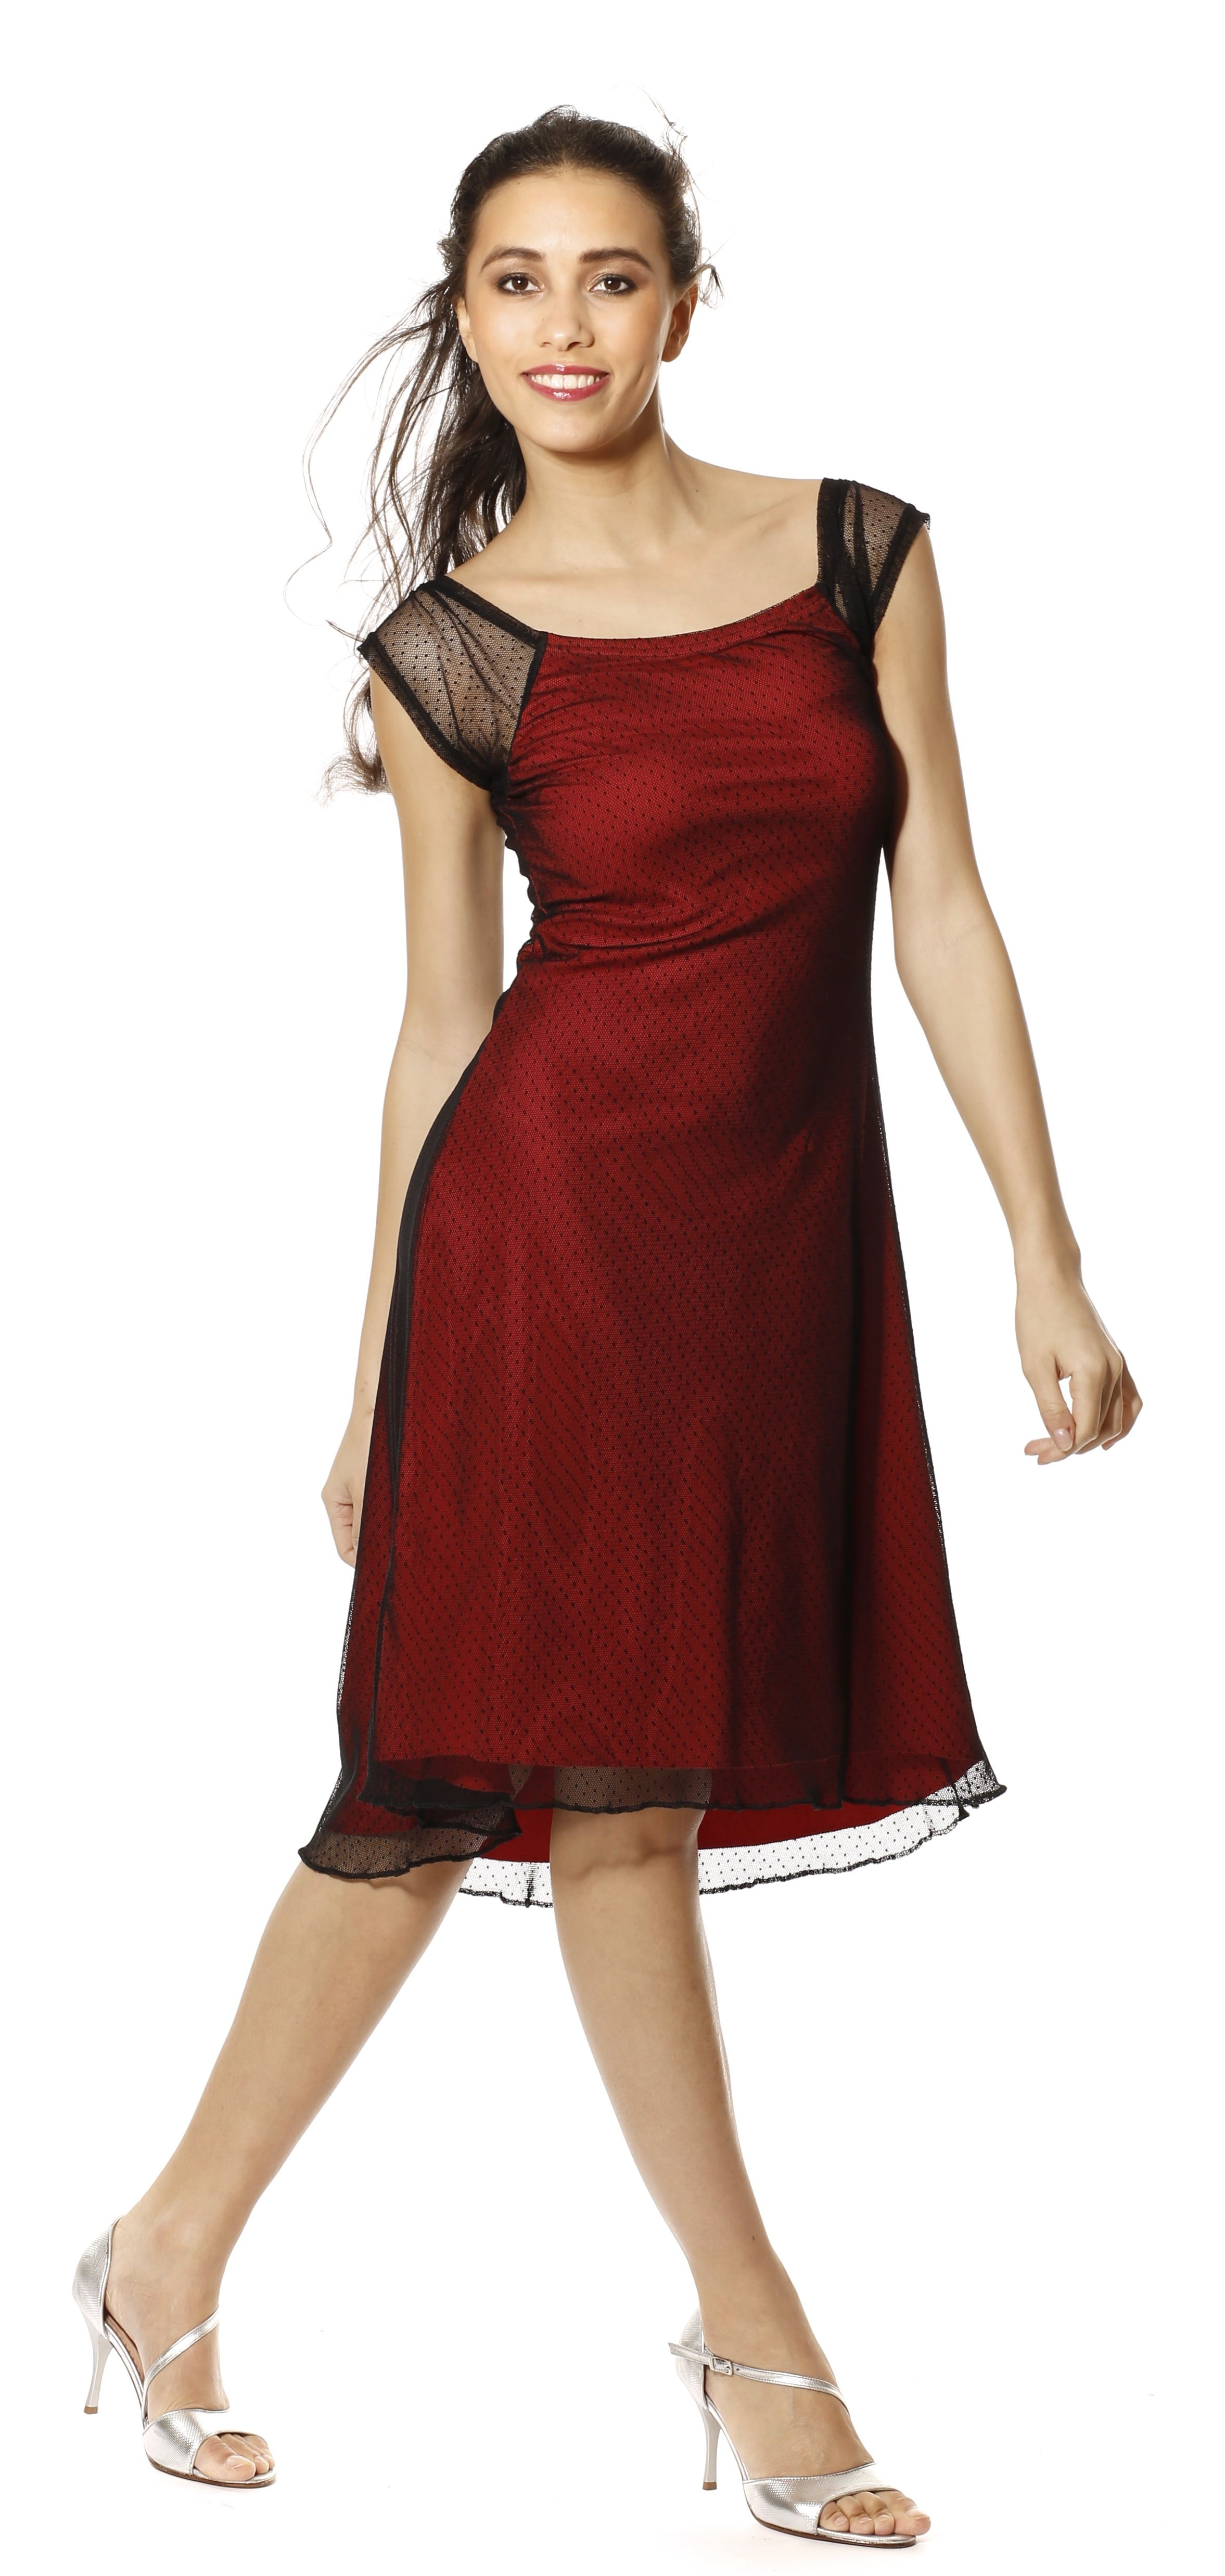 New Tango Fashions online - Our popular collection goes ...